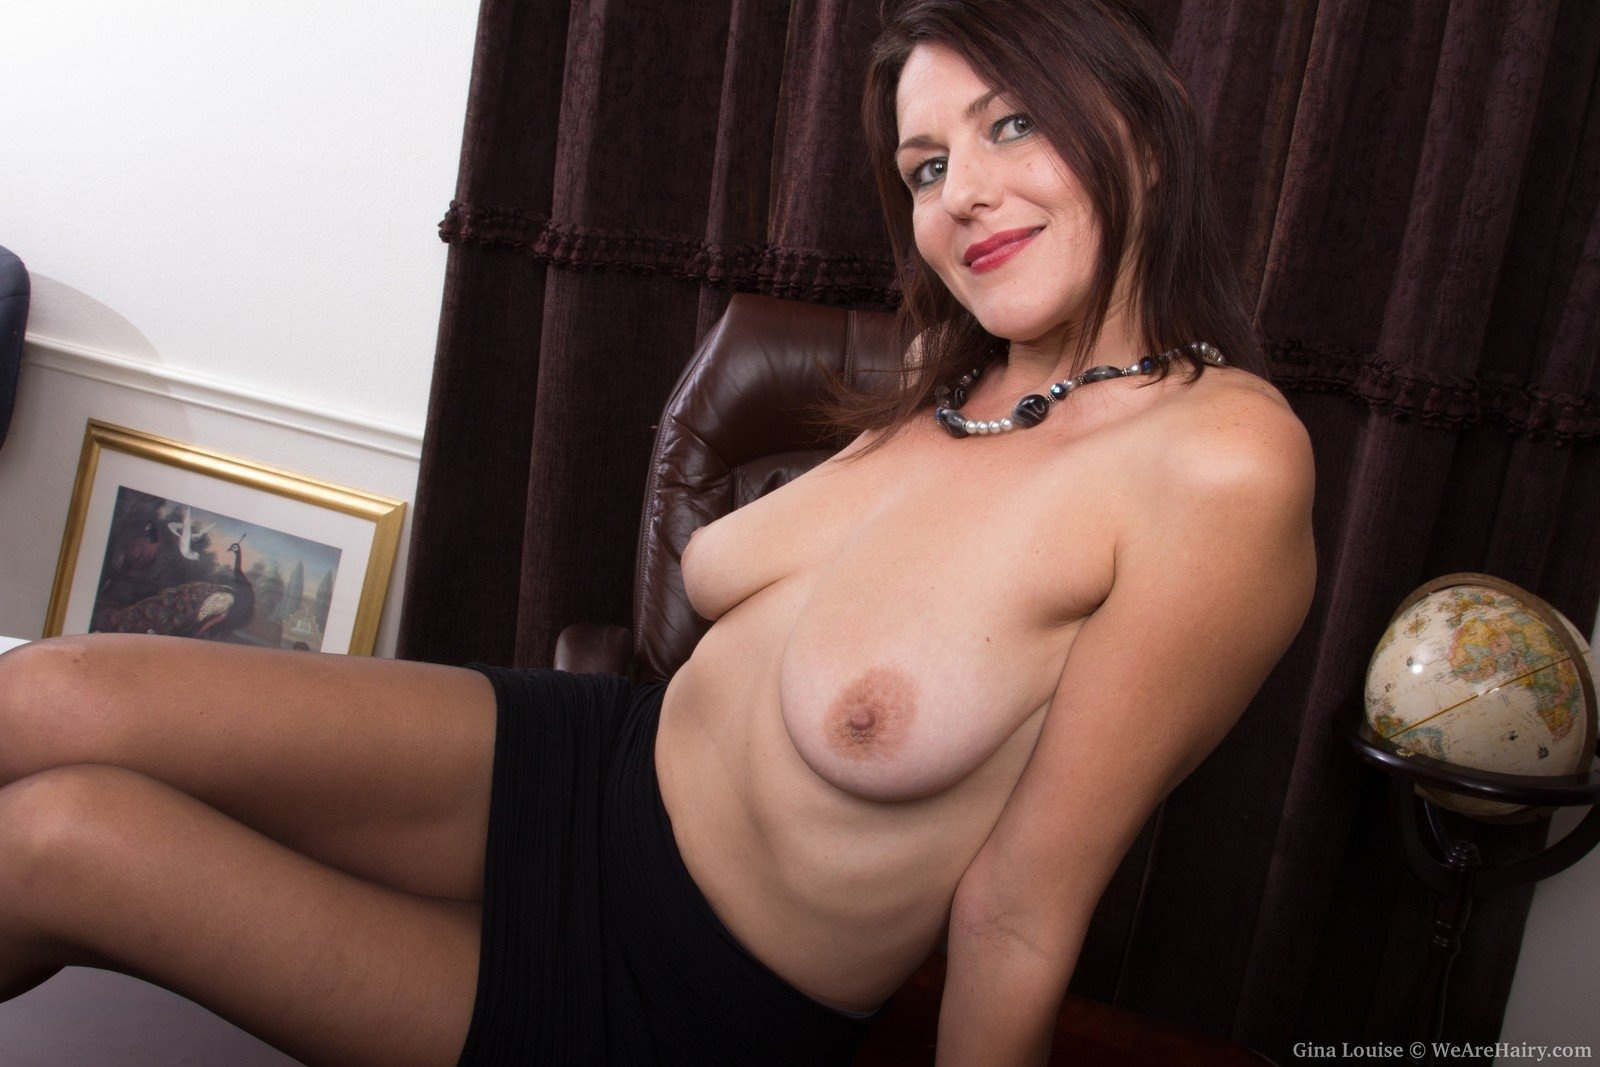 gina louise is a mature & busty all-natural beauty. she spreads her